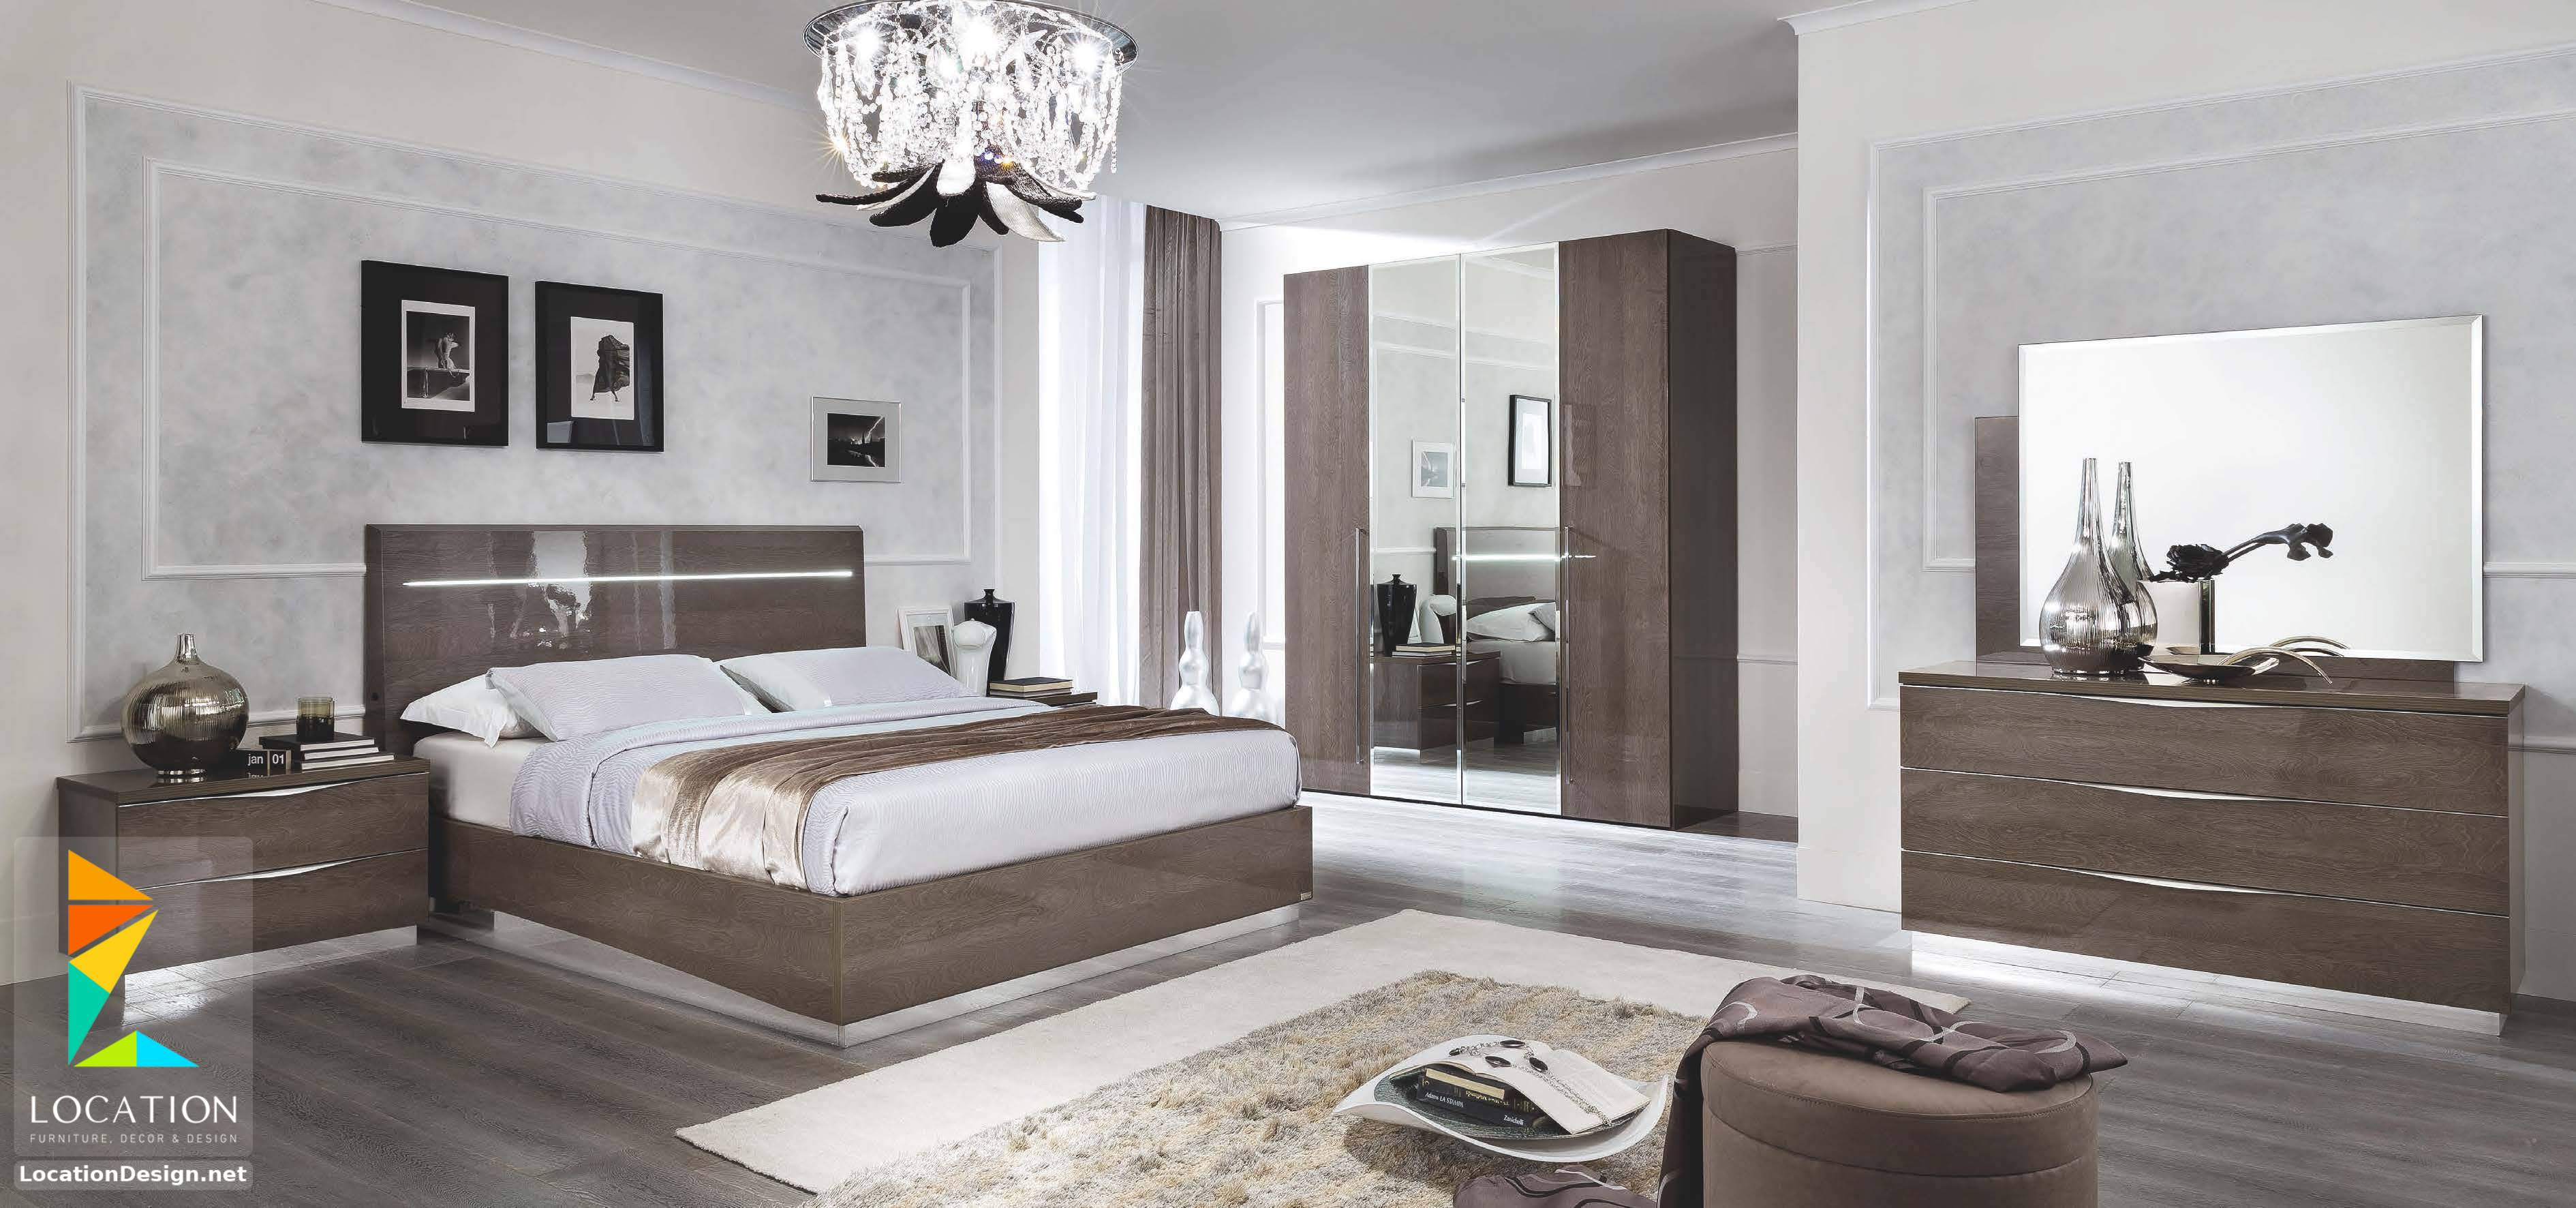 Modern Bedrooms 2018 2019 Location inside 15 Clever Concepts of How to Make Pictures Of Modern Bedrooms